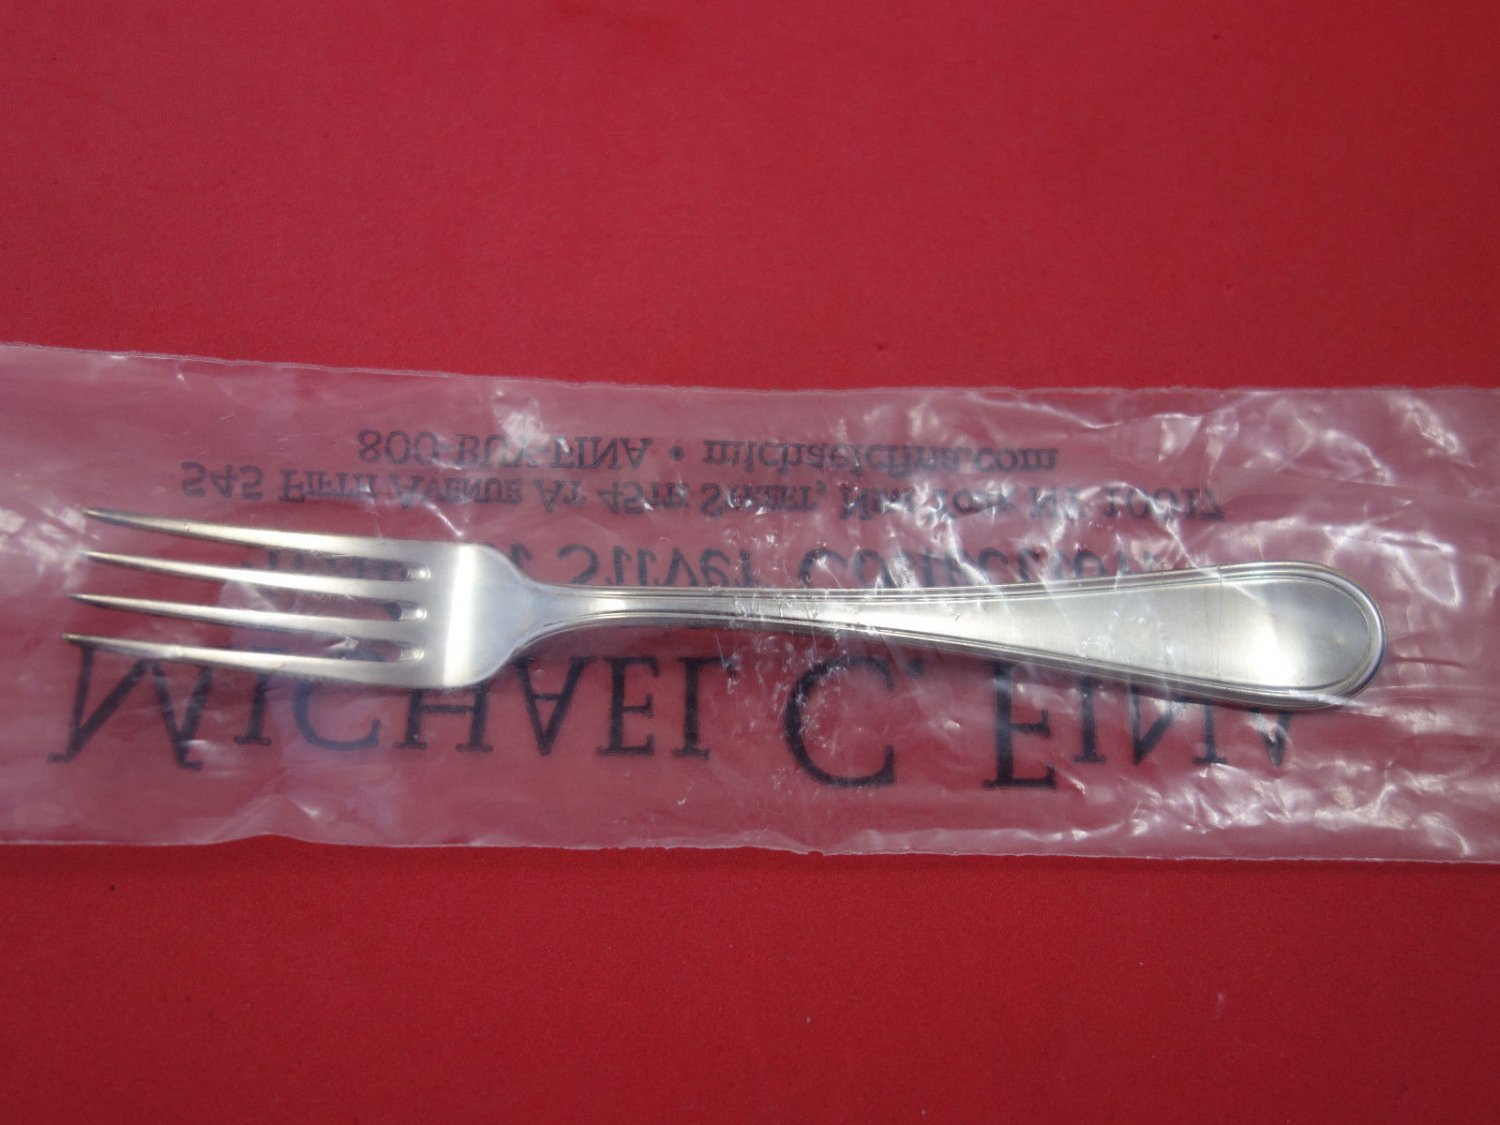 "Inglese By Schiavon Sterling Silver Cocktail Fork 5 1/2"" New"